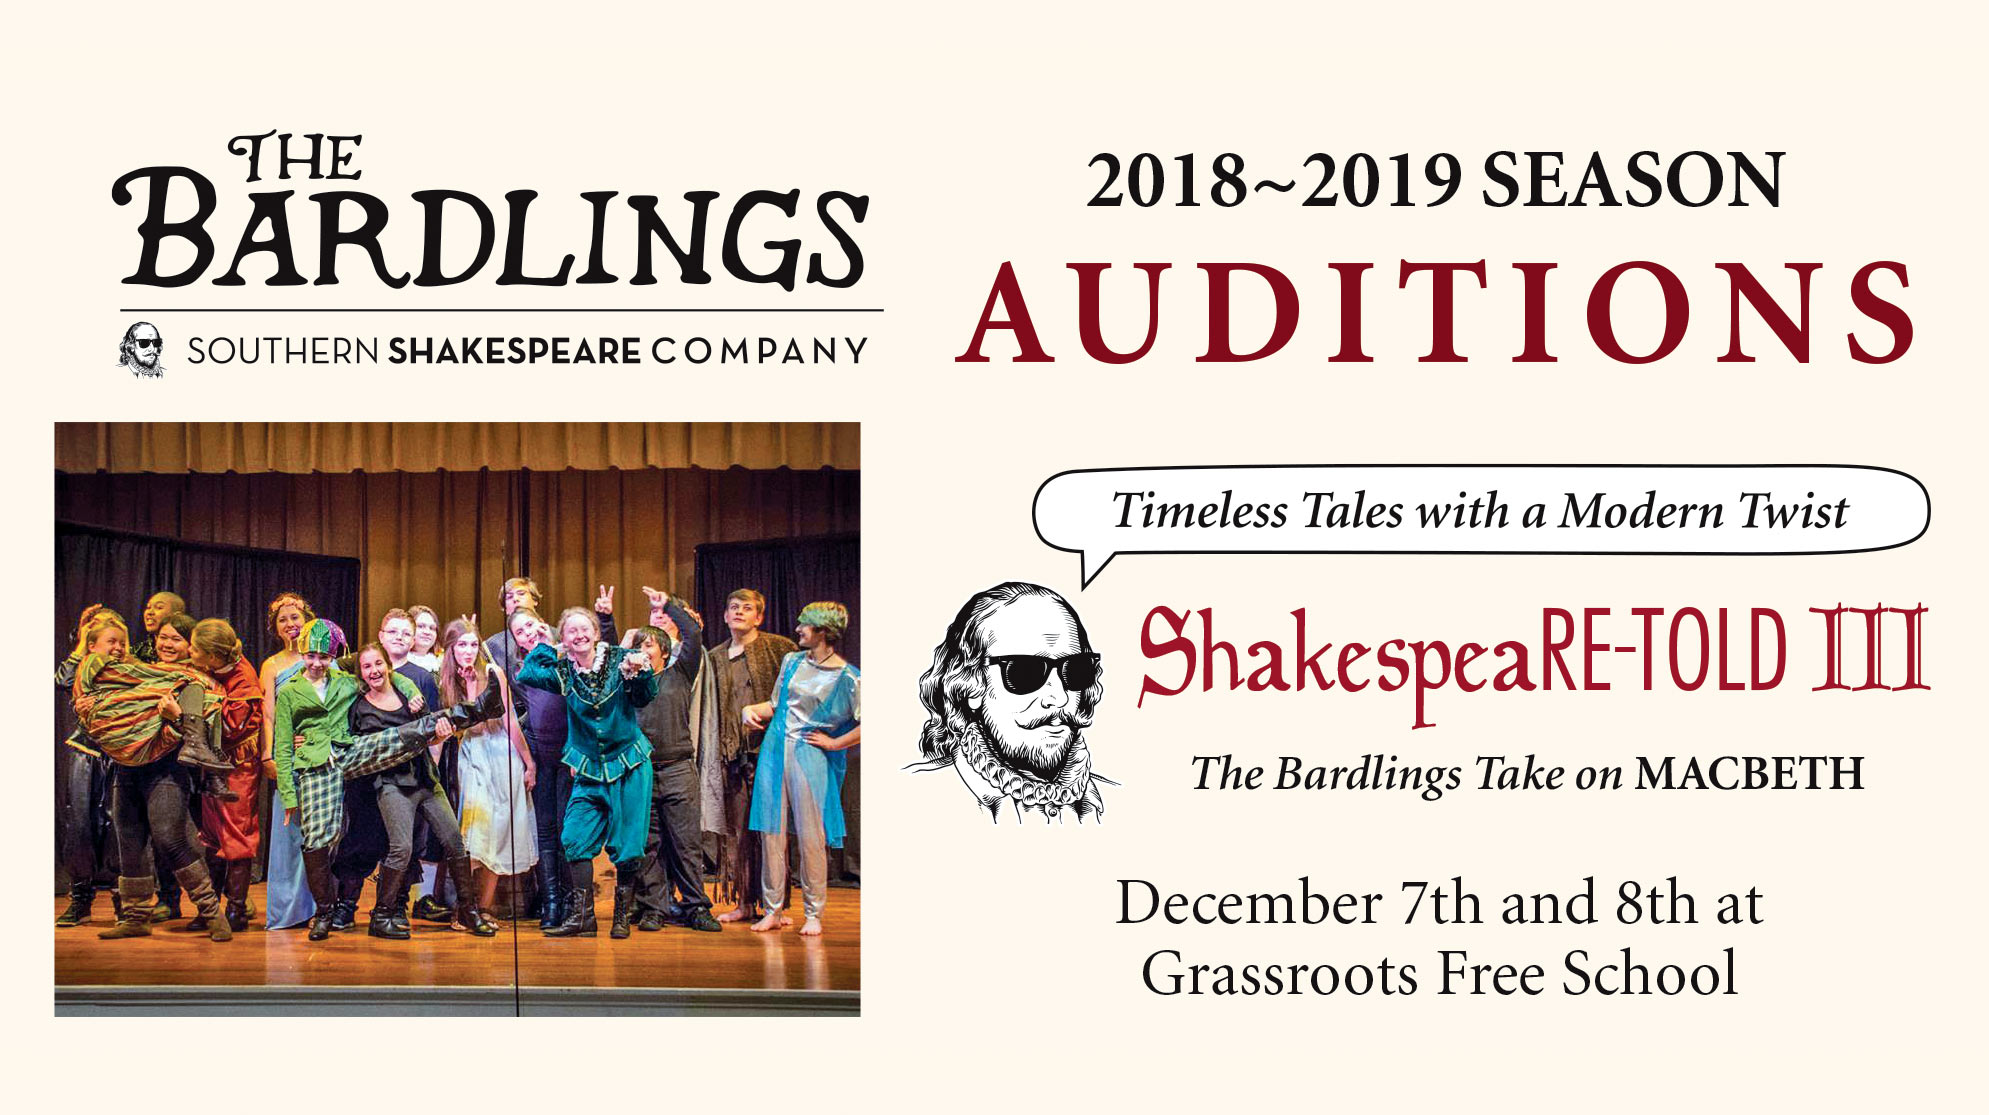 Auditions for The Bardlings presented by Southern Shakespeare